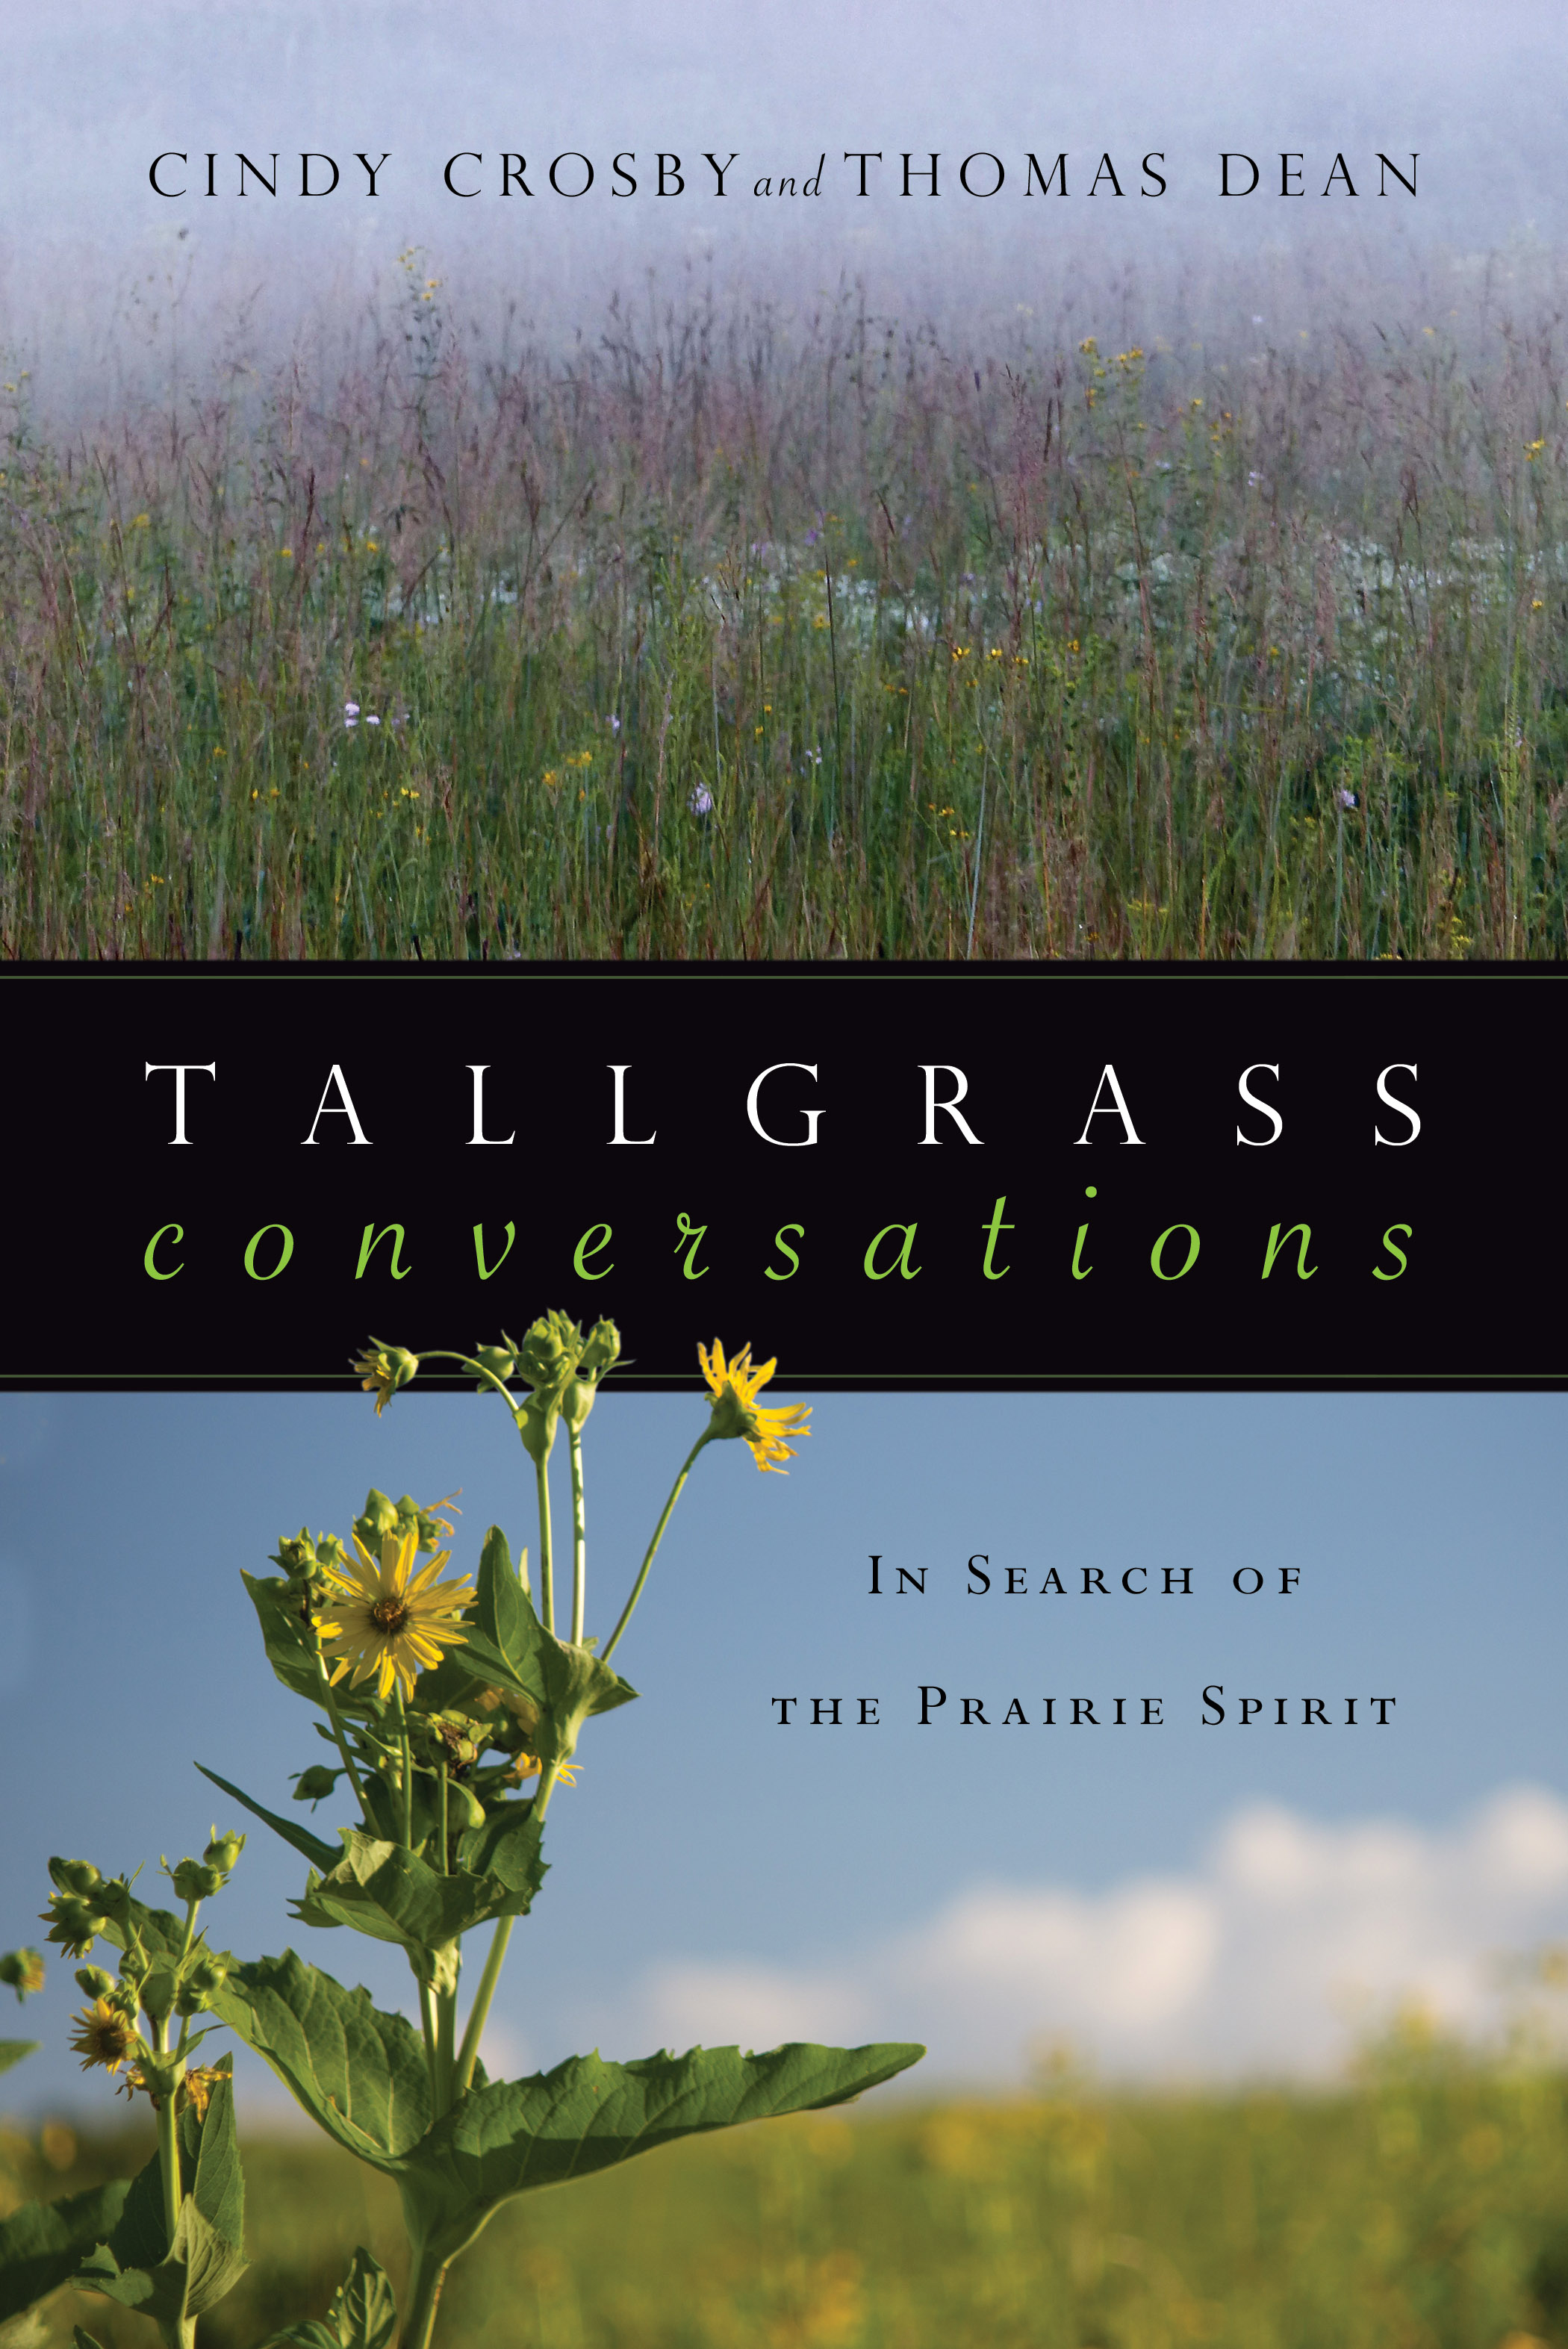 TallgrassConversations2018